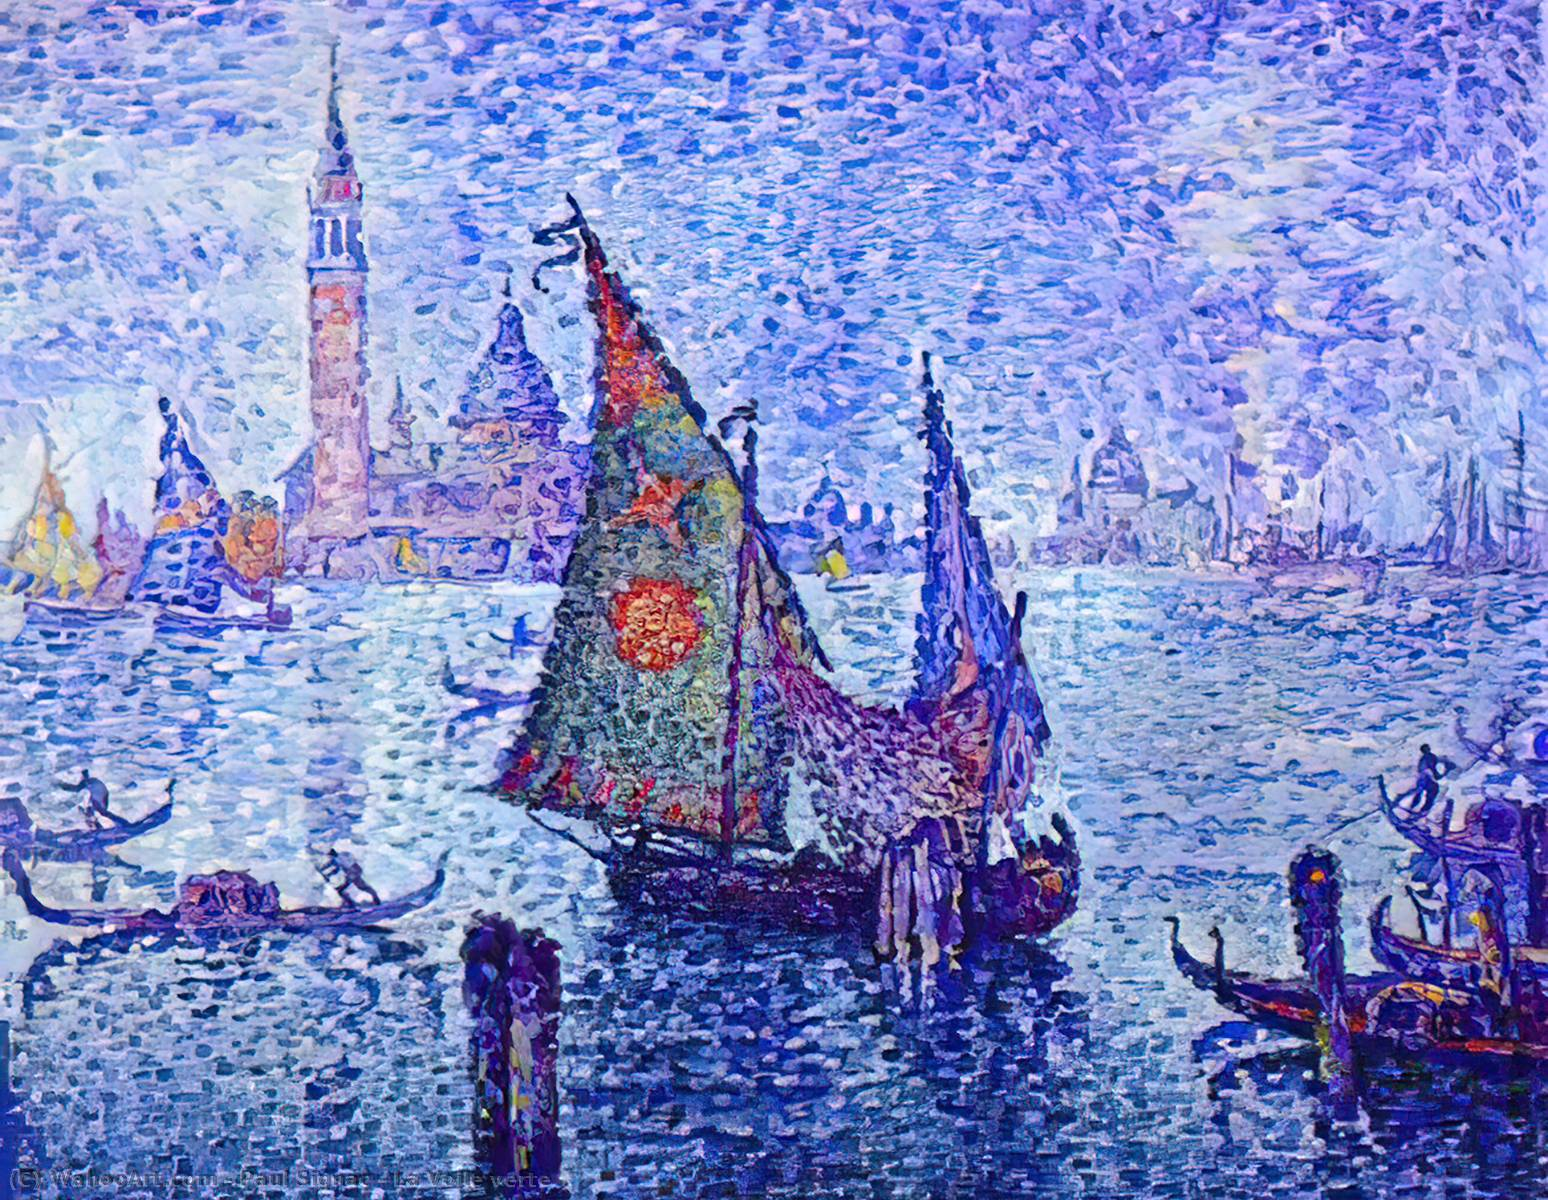 La Voile verte, Oil On Canvas by Paul Signac (1863-1935, France)